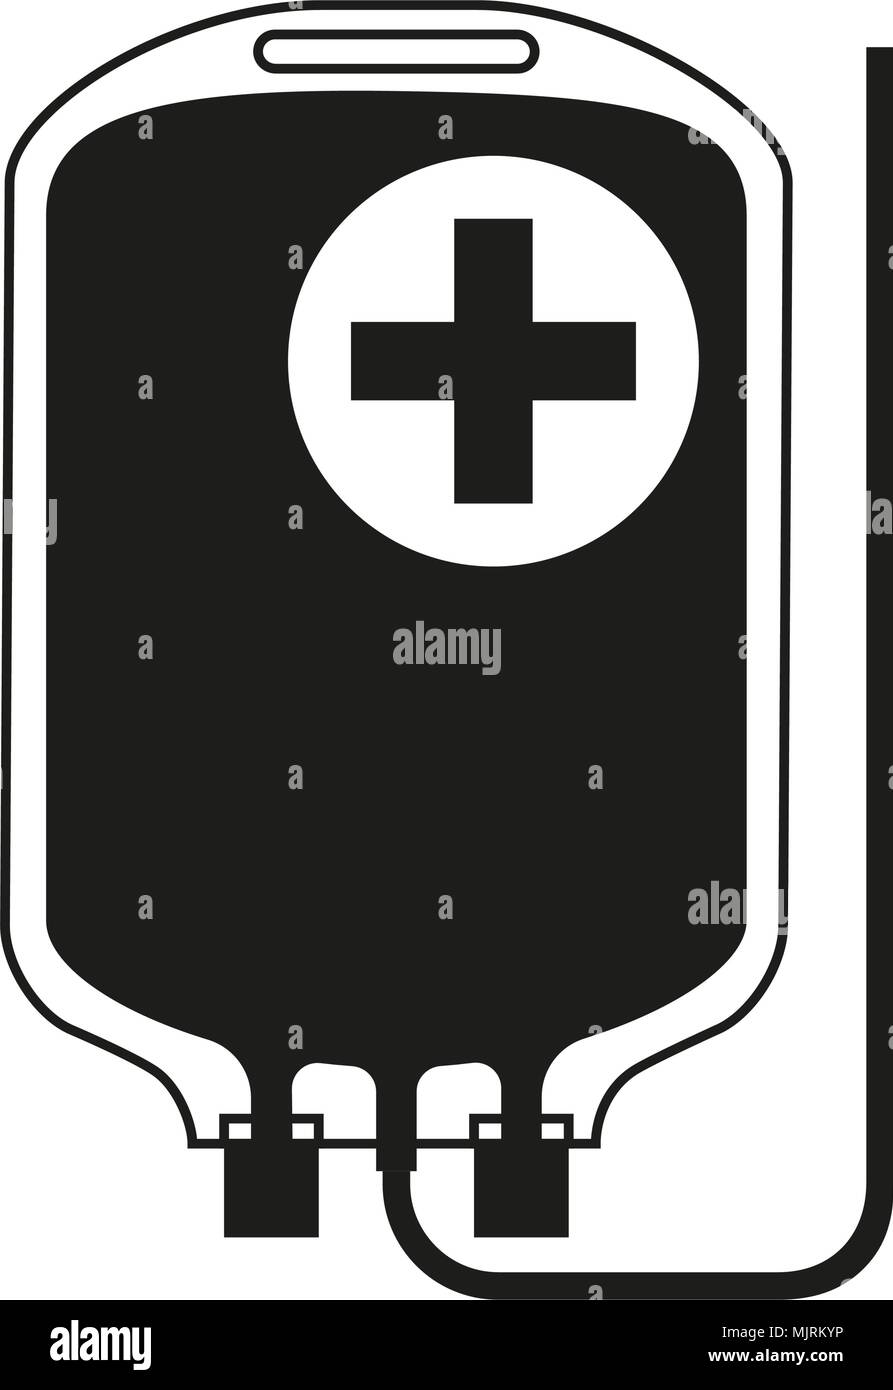 Black and white IV medicine bag silhouette. Healthcare themed vector illustration for icon, sticker, sign, patch, certificate badge, gift card, stamp  - Stock Vector